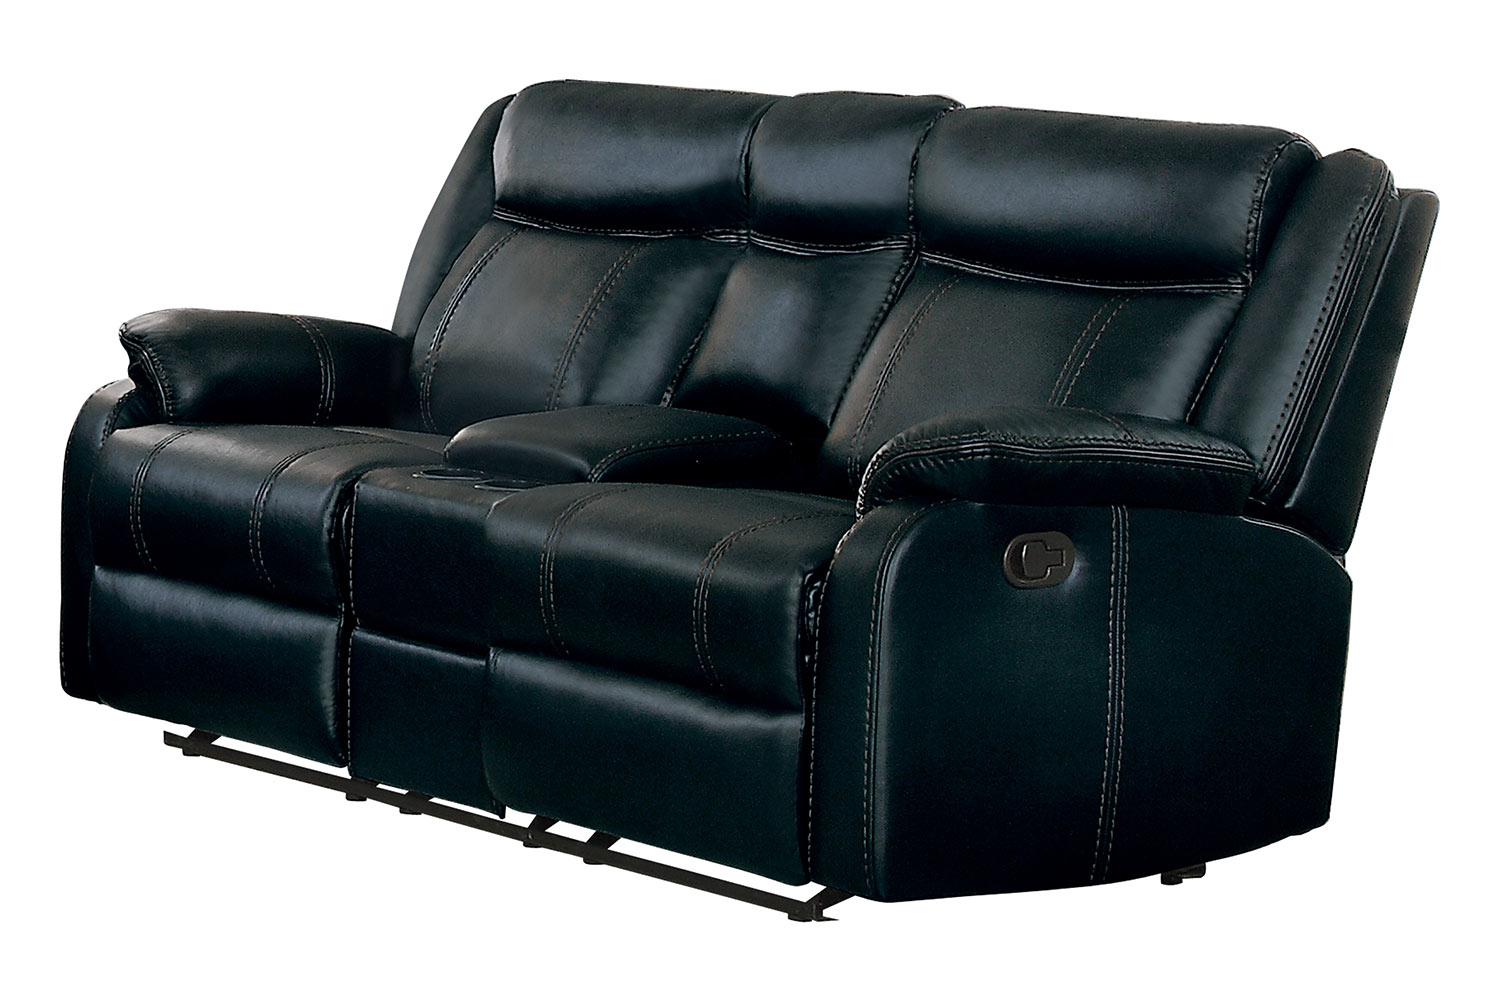 Homelegance Jude Double Glider Reclining Love Seat With